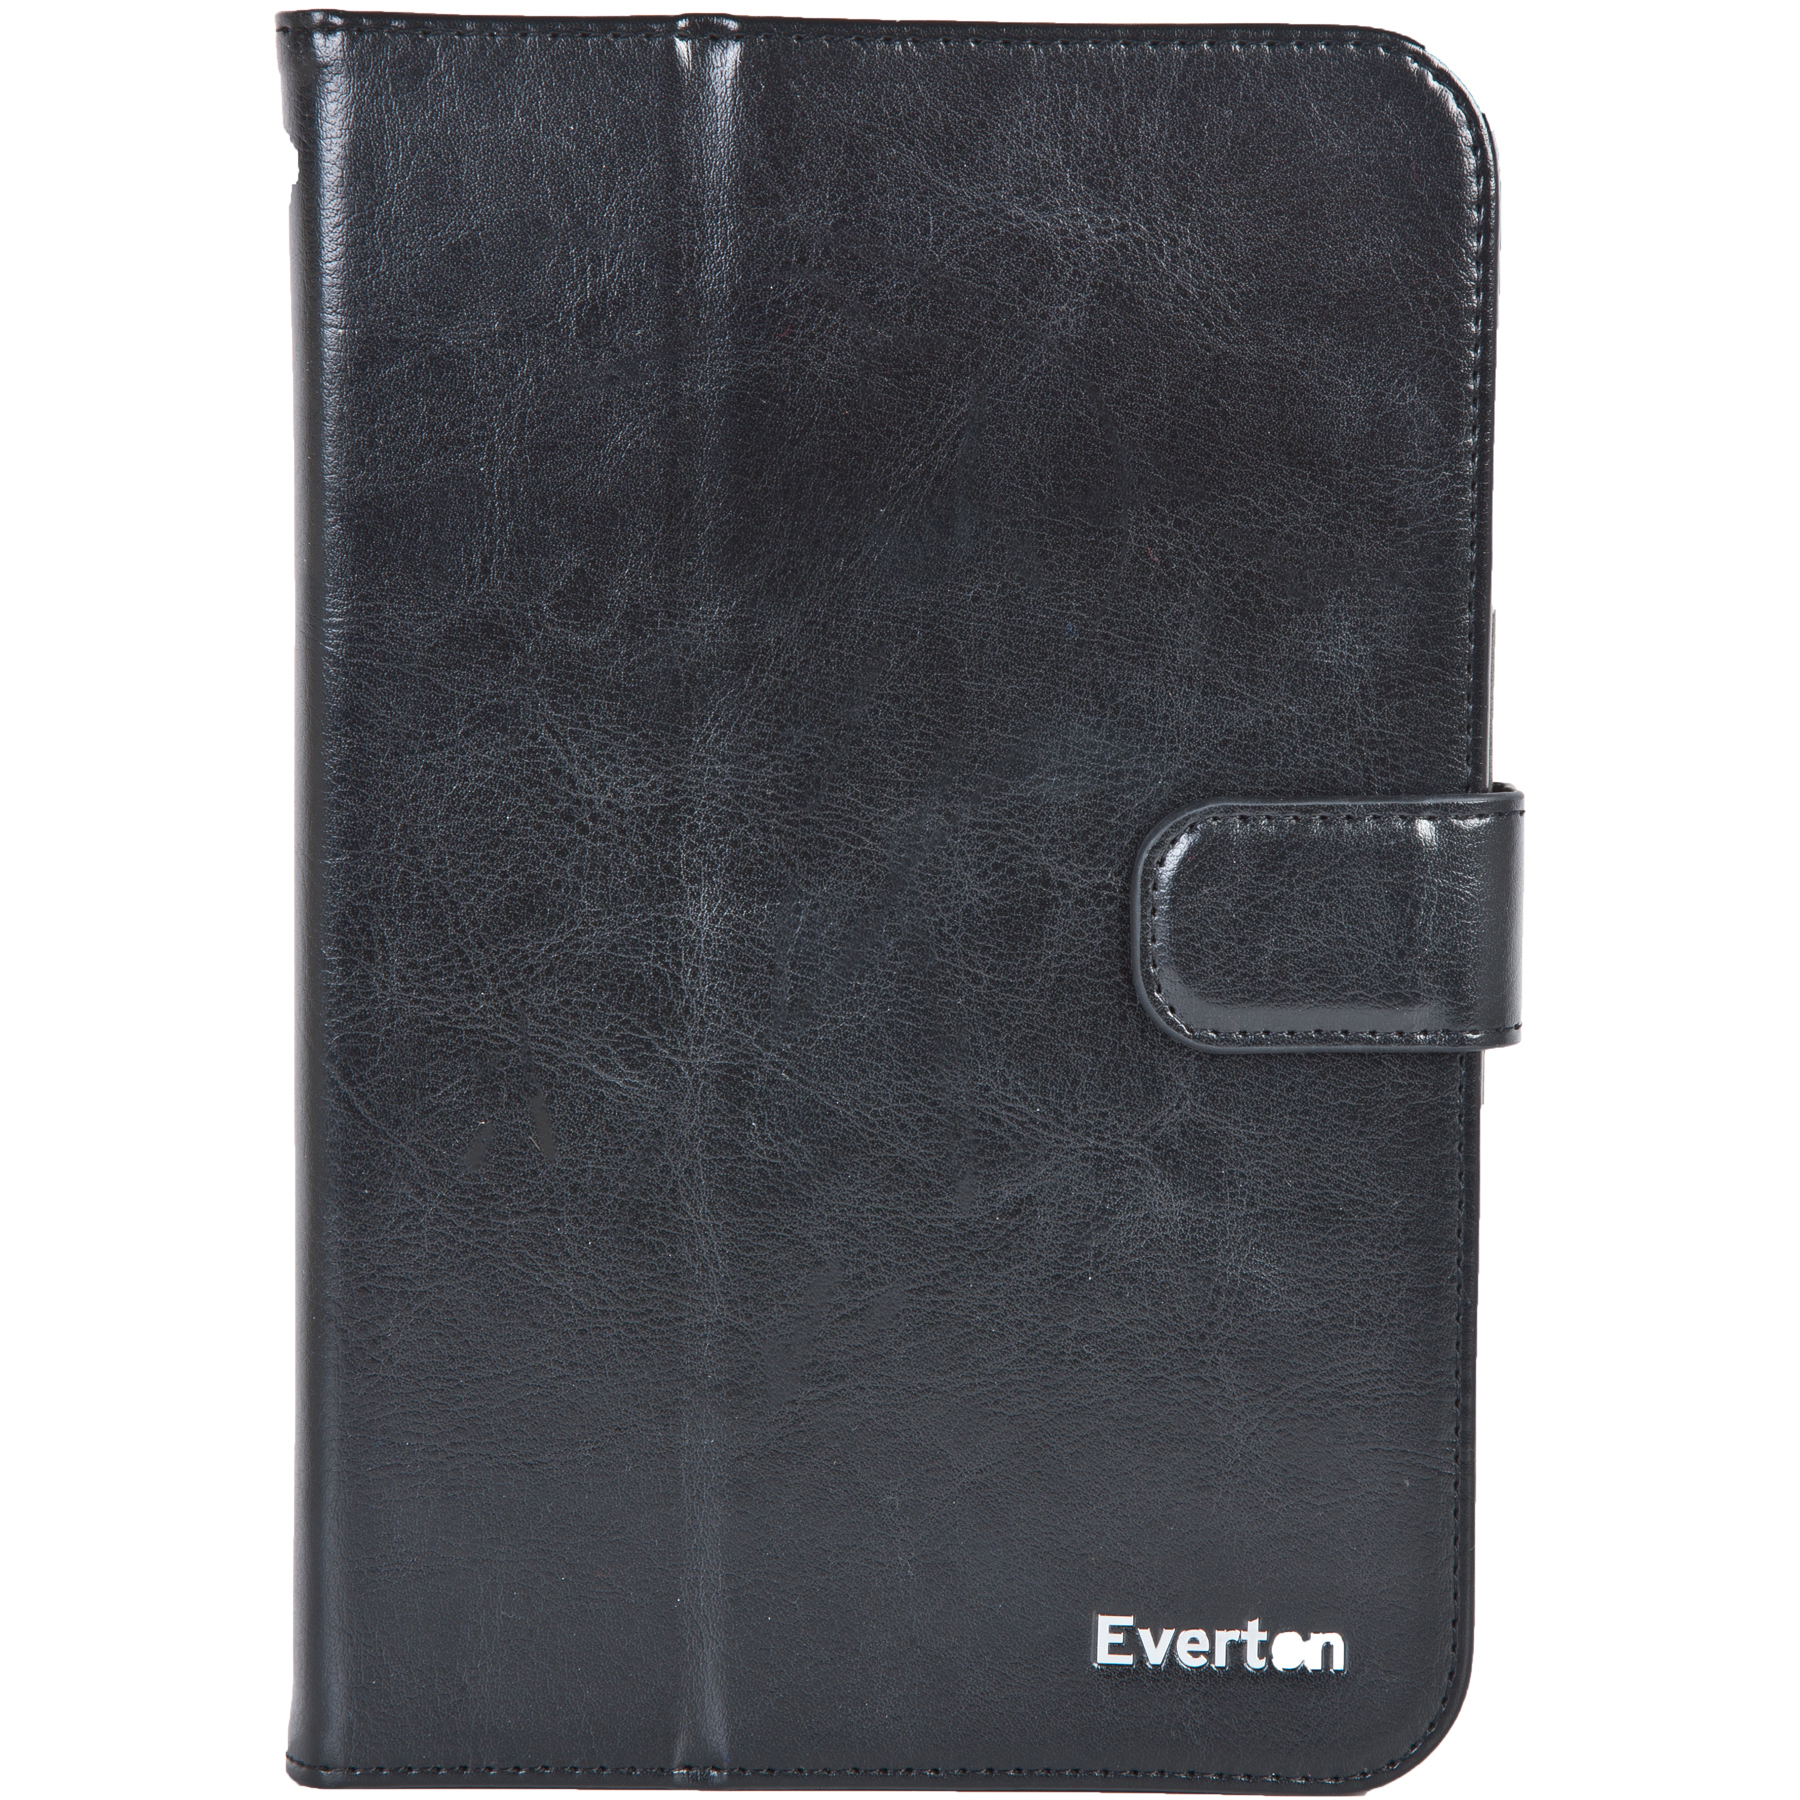 Everton Adjustable Tablet Cover - 7-8 Inch